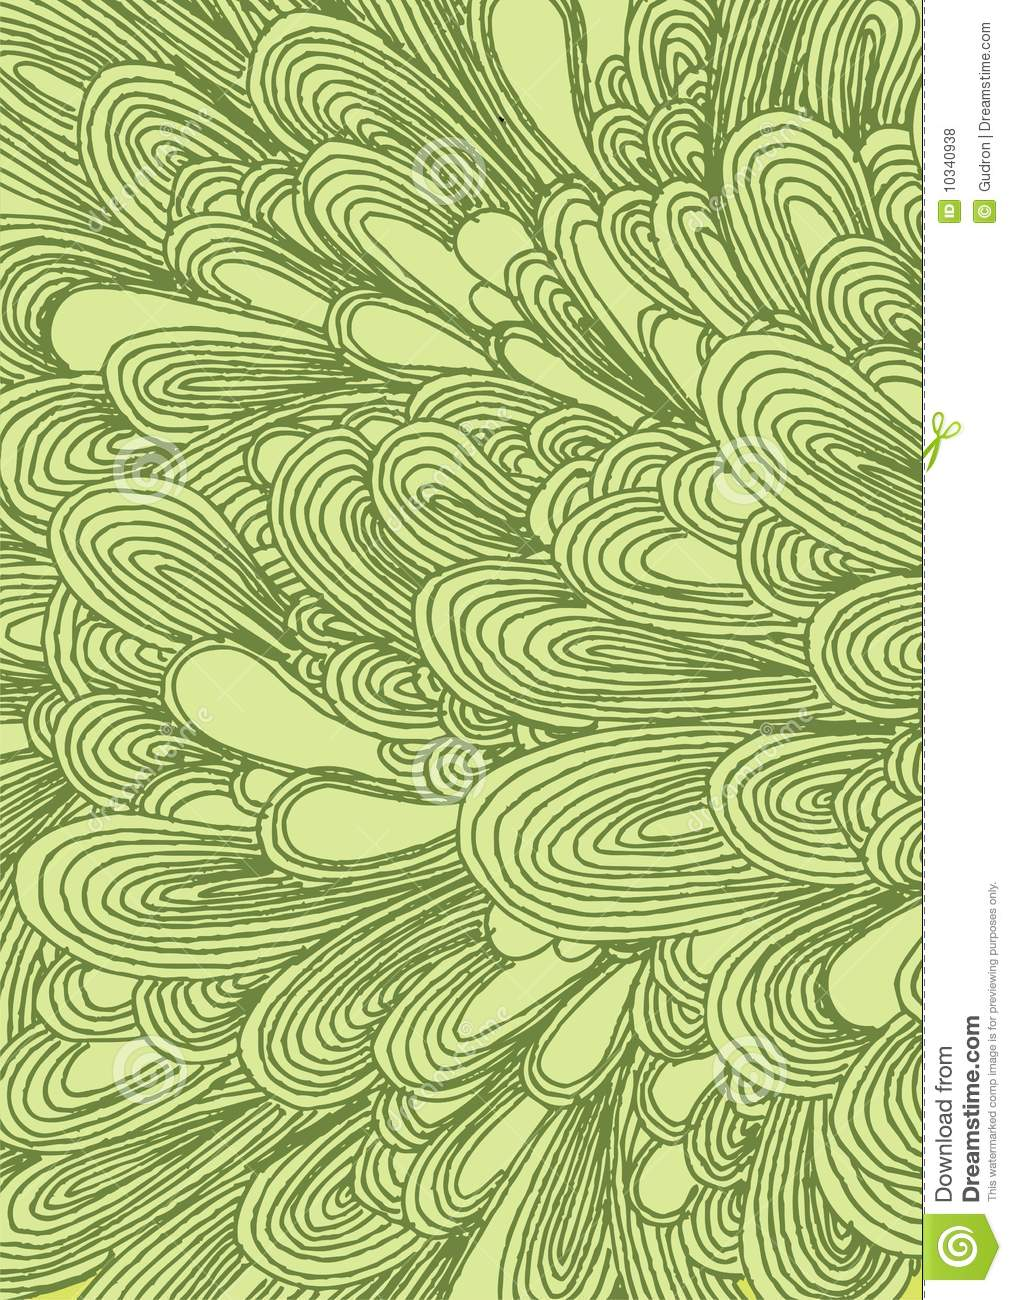 Line Art Royalty Free : Organic line art background royalty free stock photos